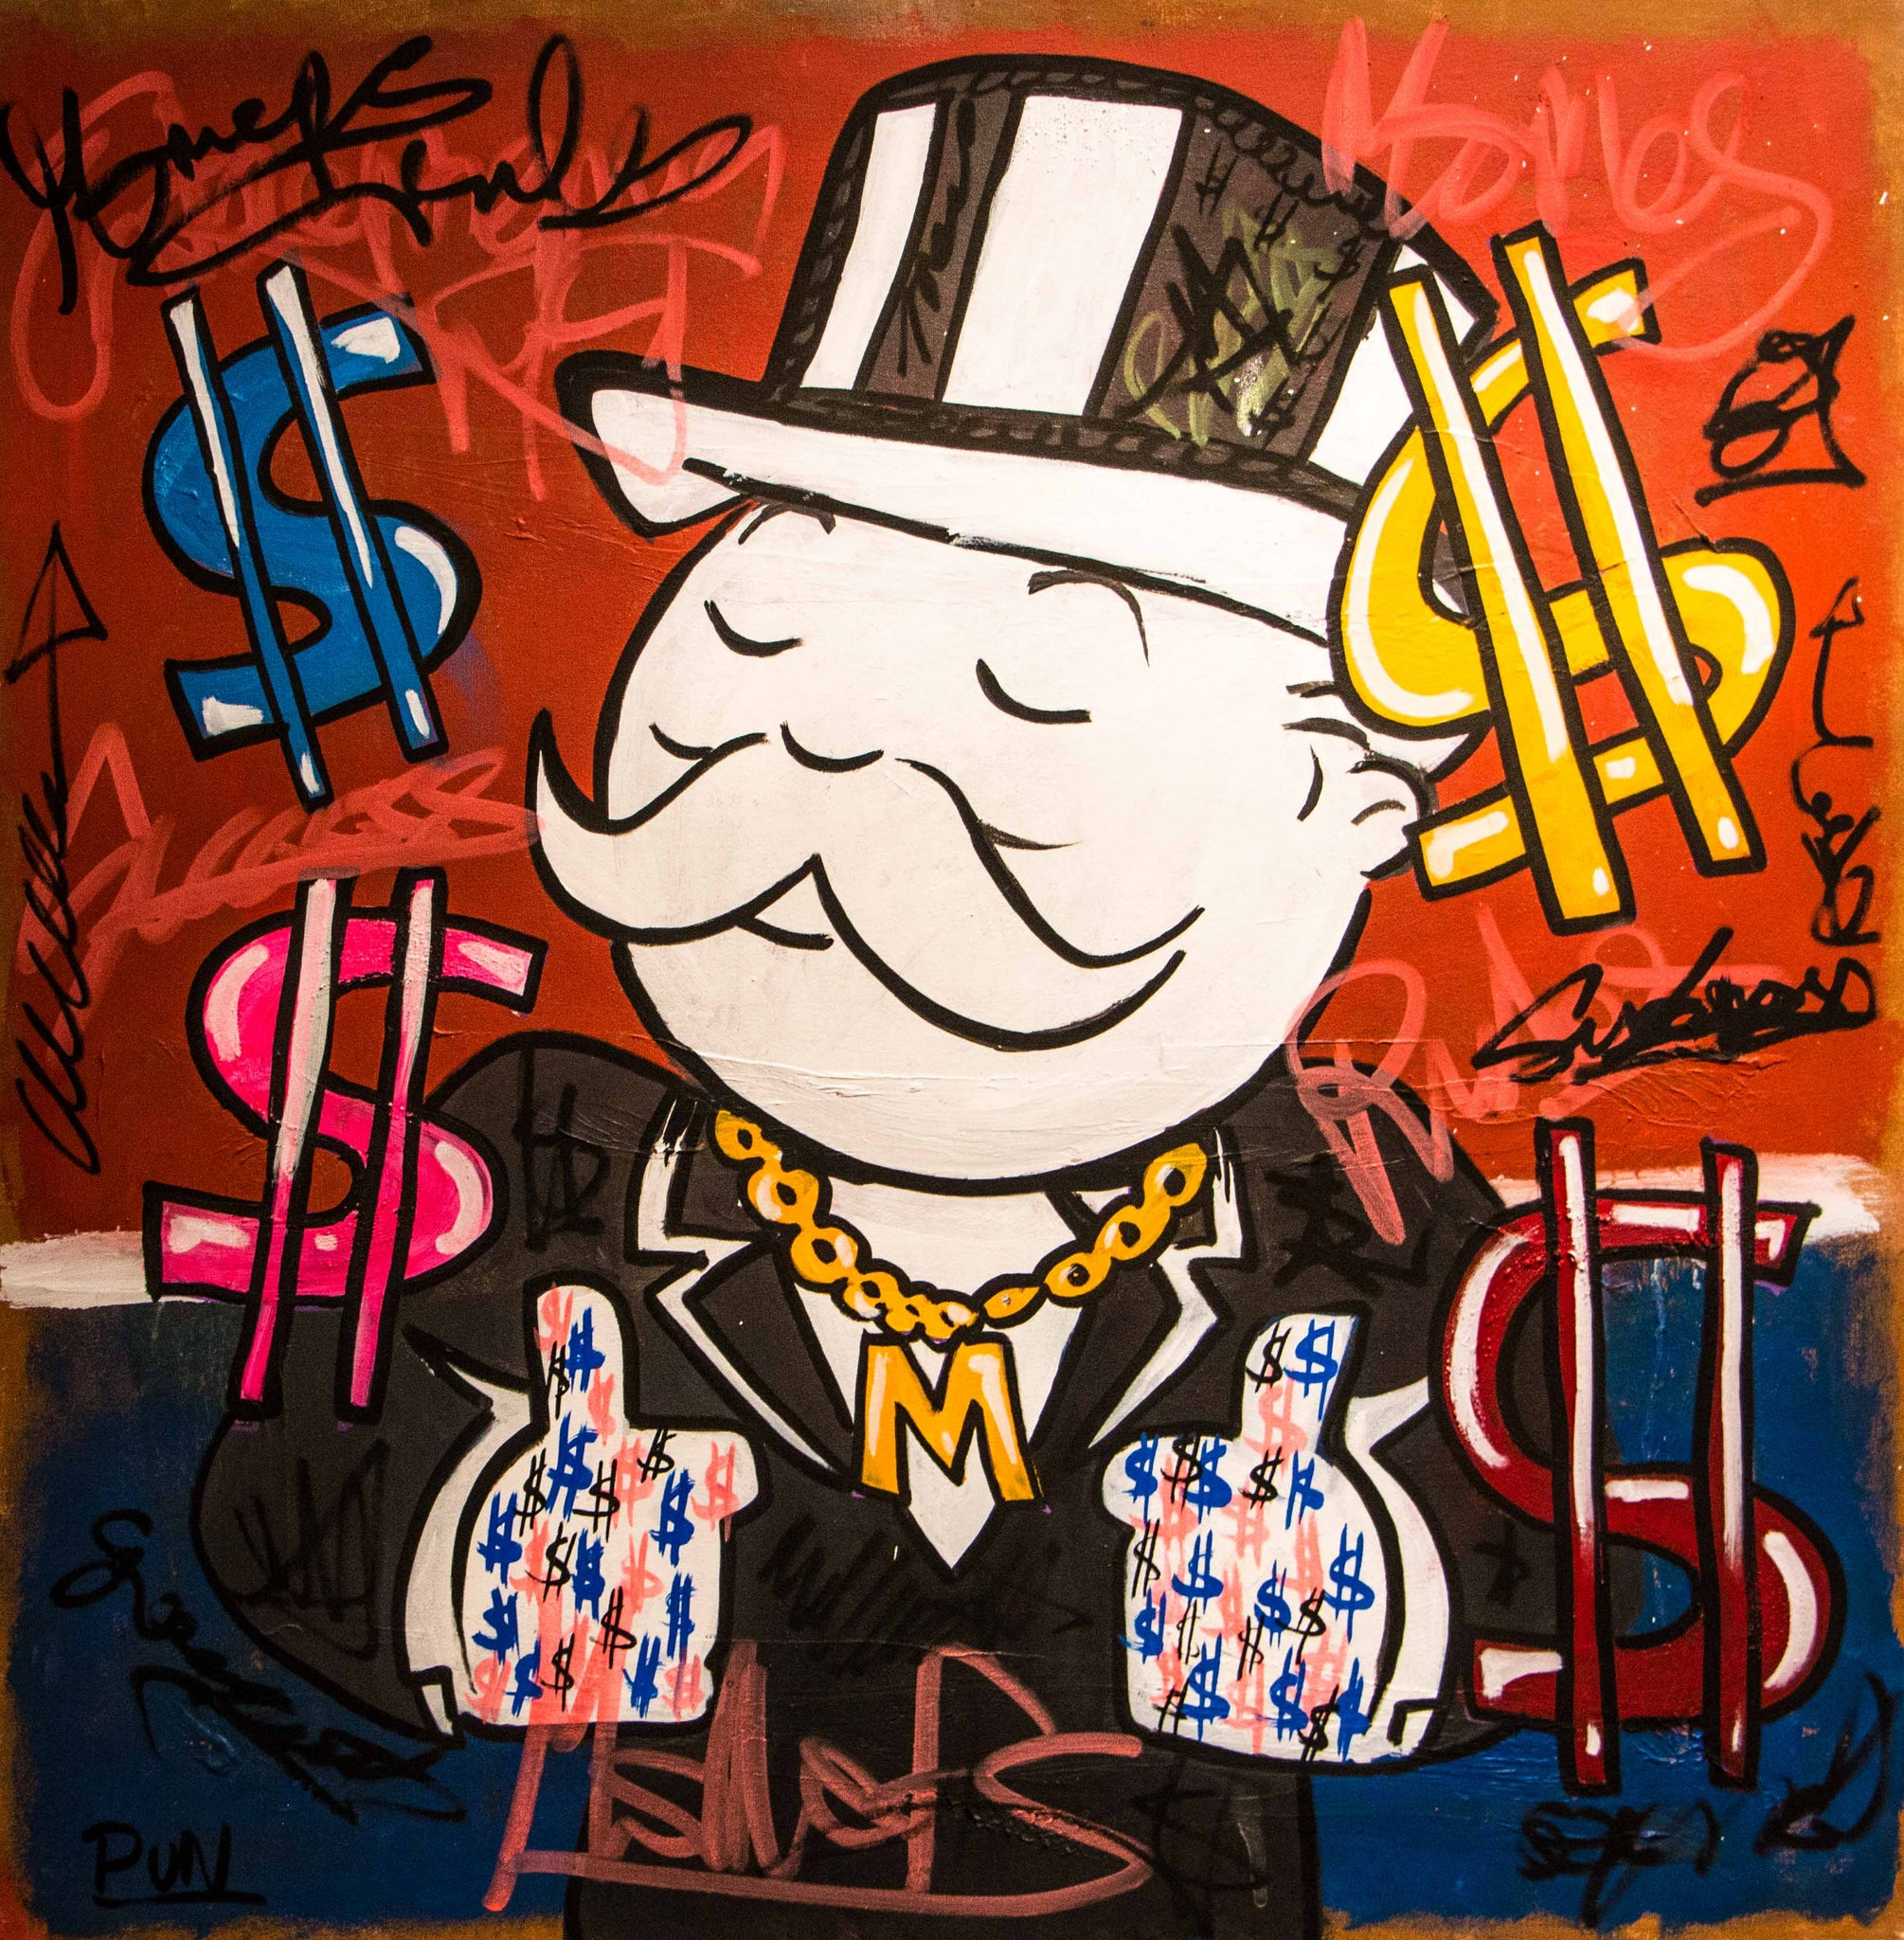 Executive ft. Mr. Monopoly